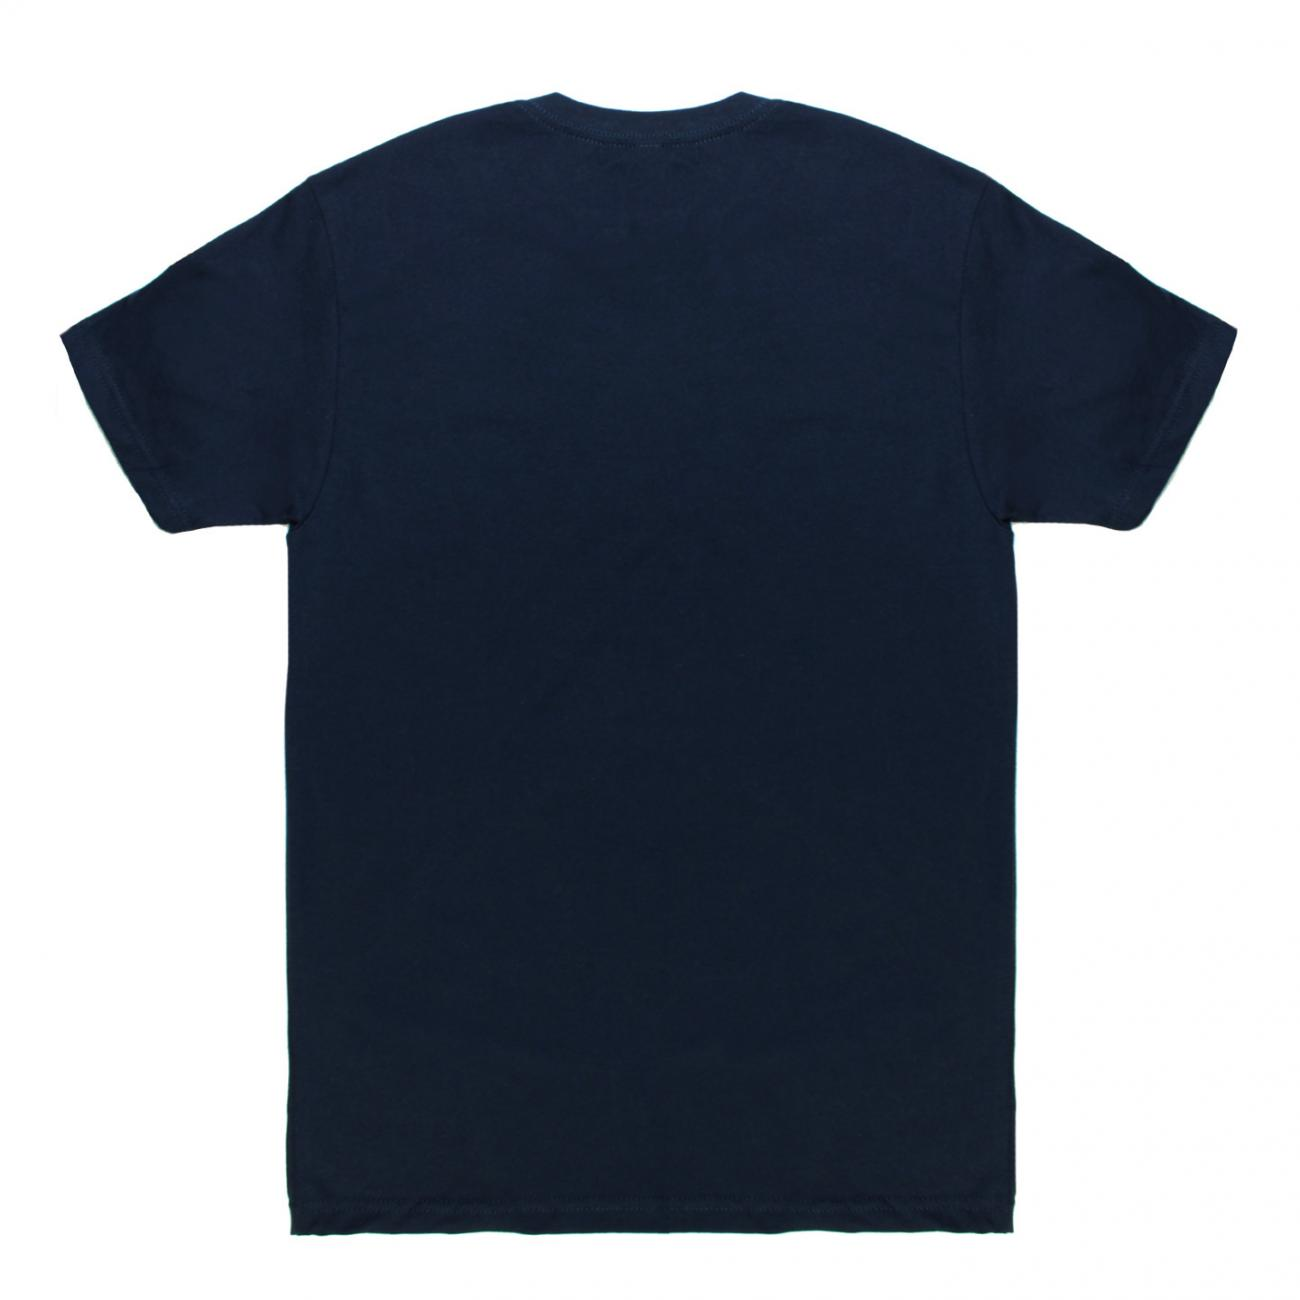 Gurney's T-shirt Wave screened across chest back navy